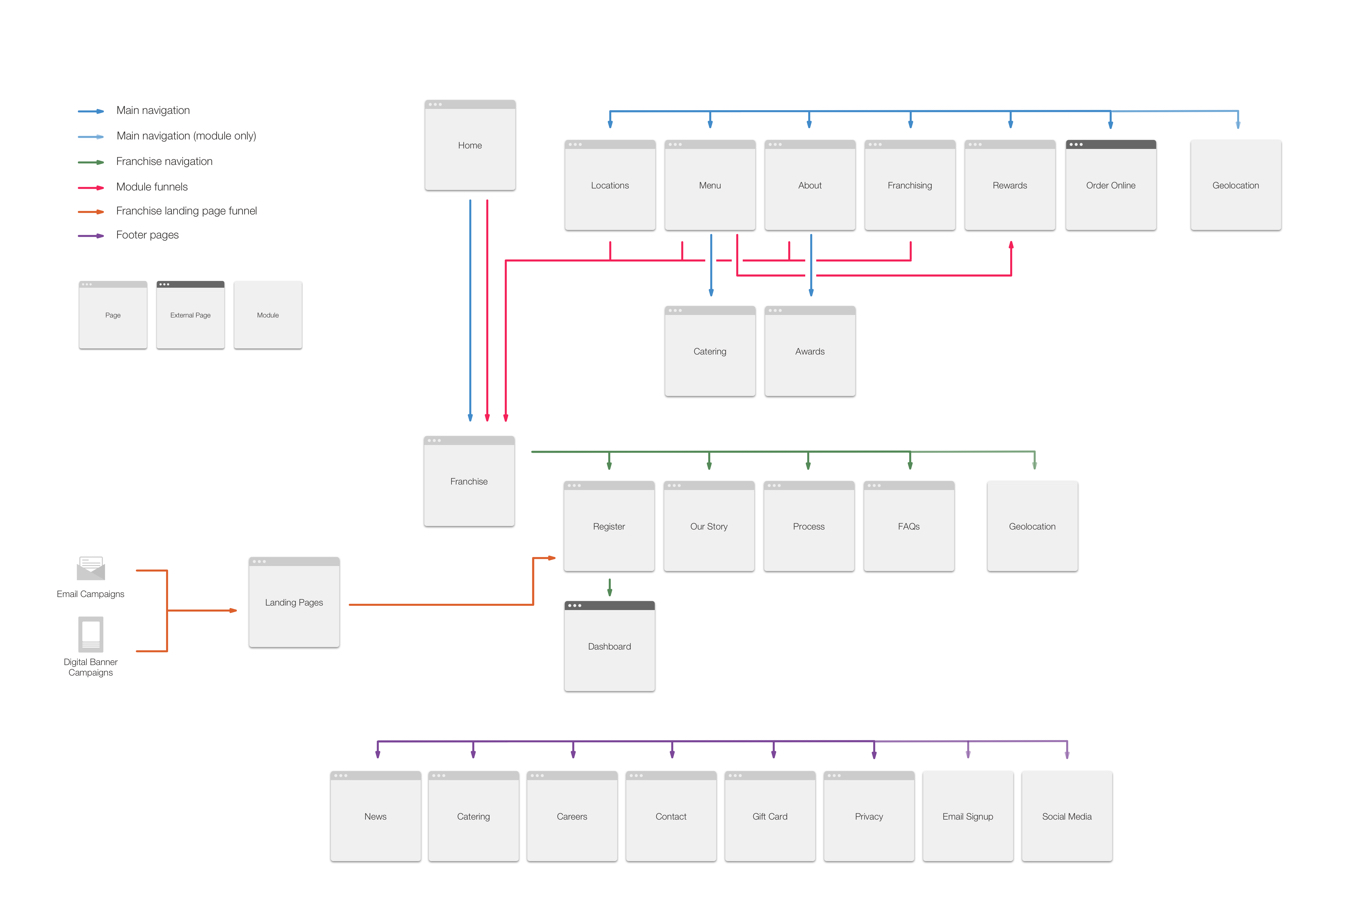 Capriotti's sitemap and user flows.